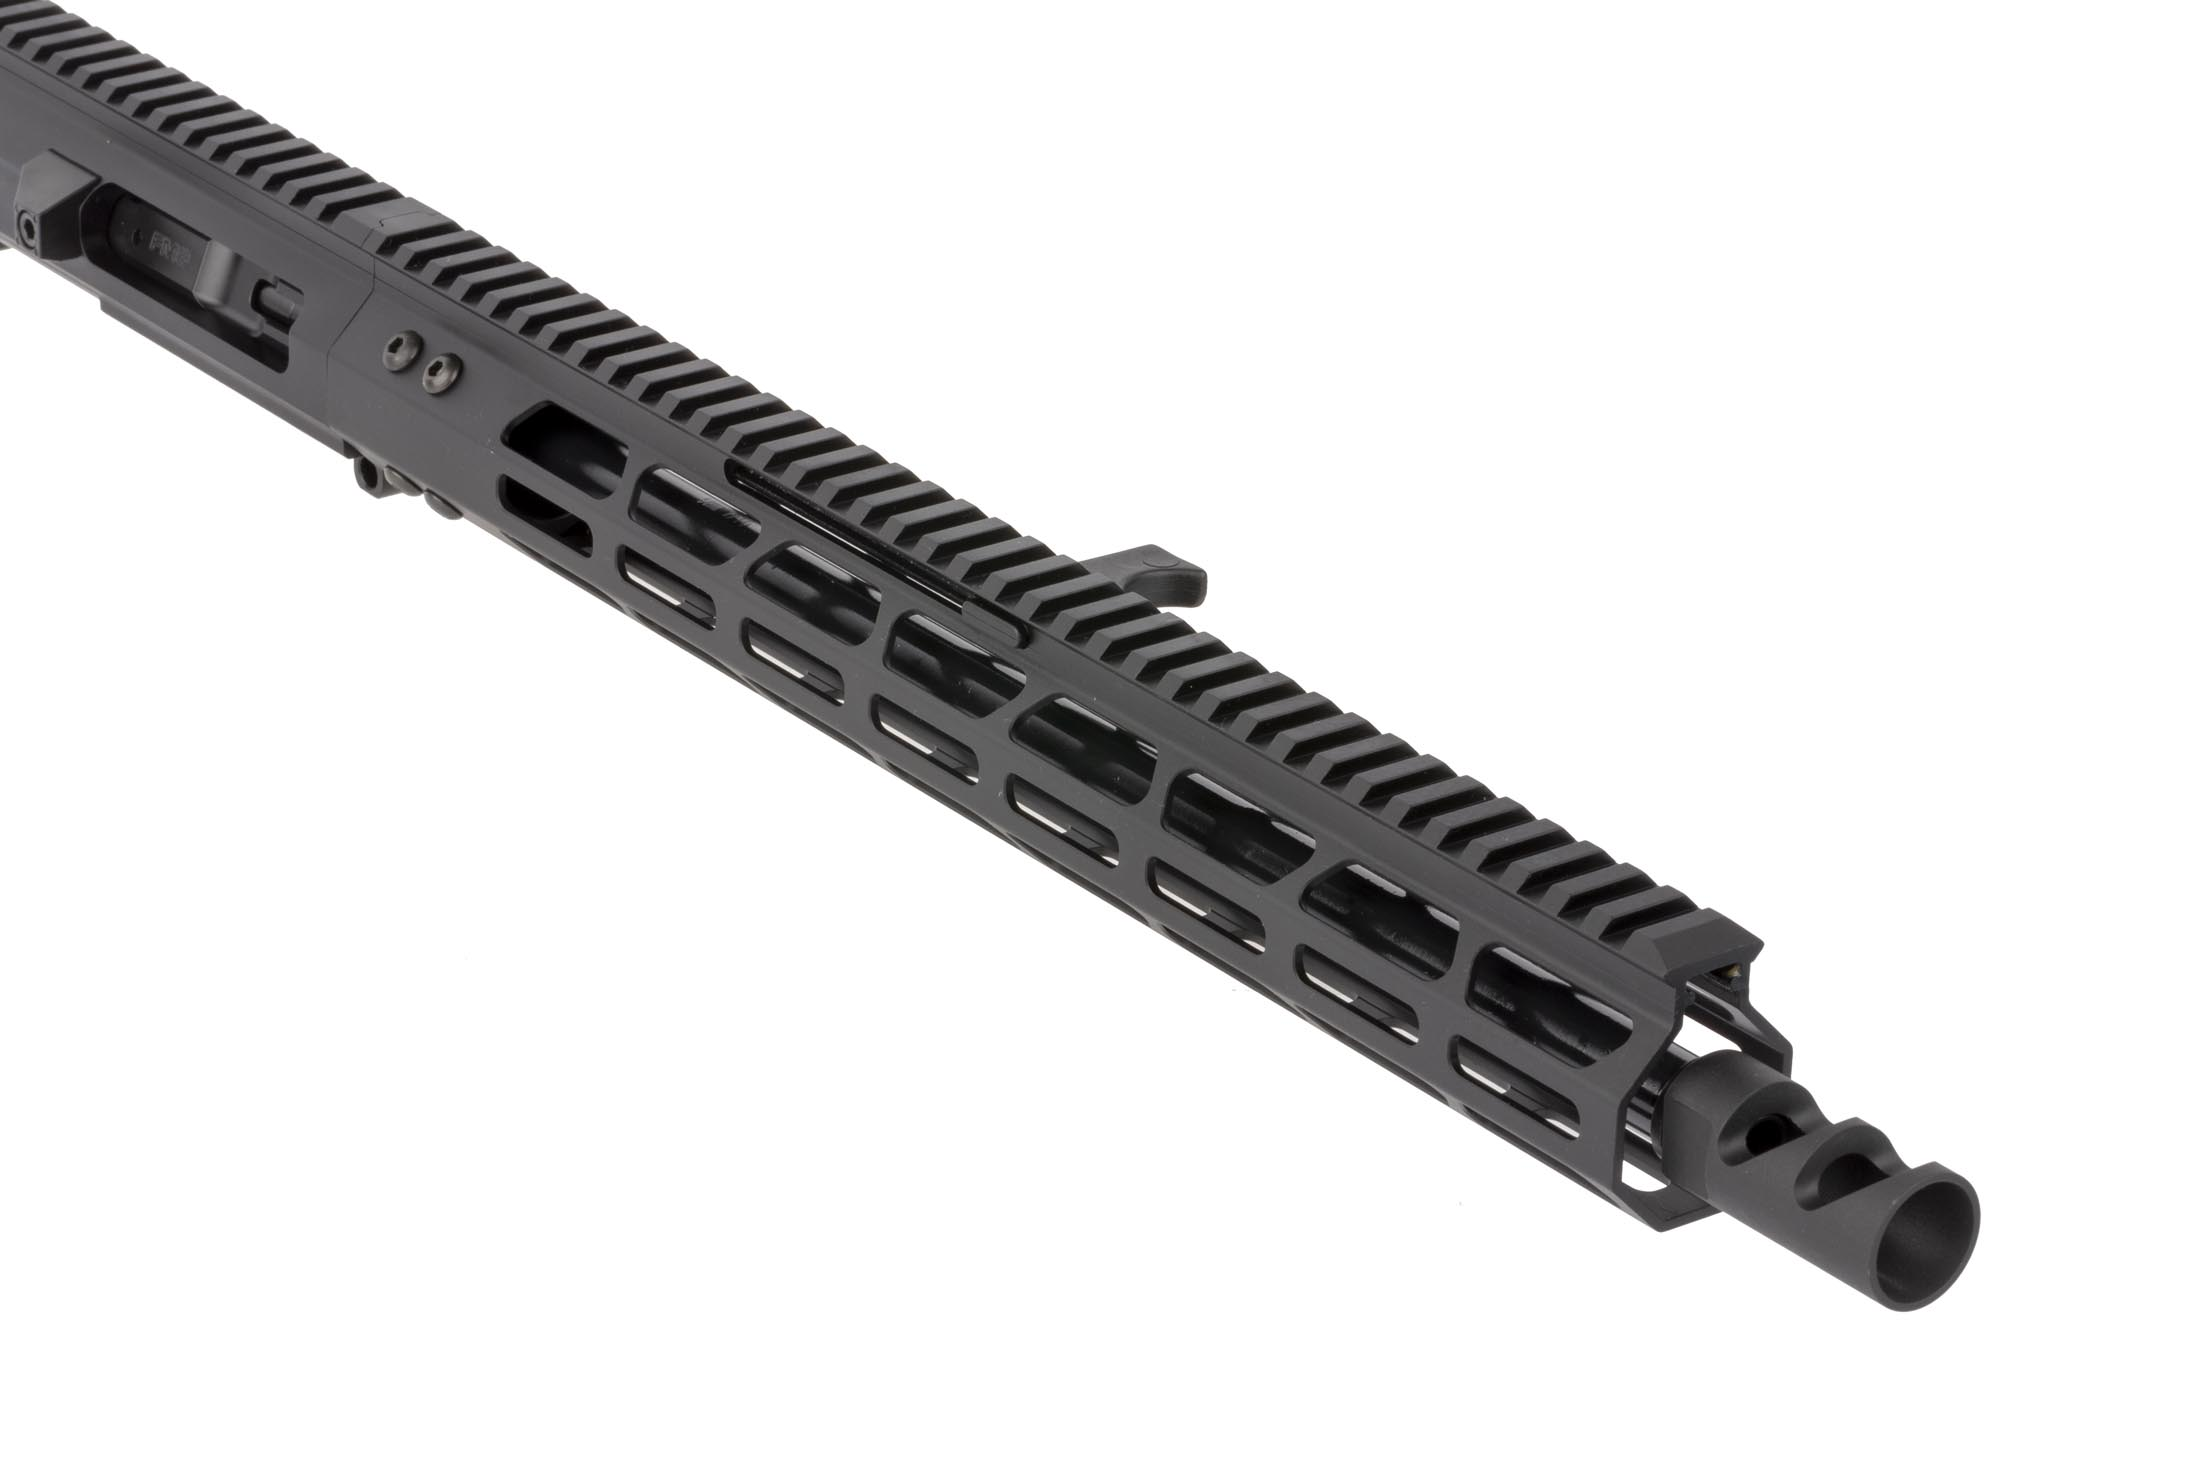 UPPER RECEIVERS M-LOK ASSEMBLED GLOCK 9mm | Foxtrot Mike Products